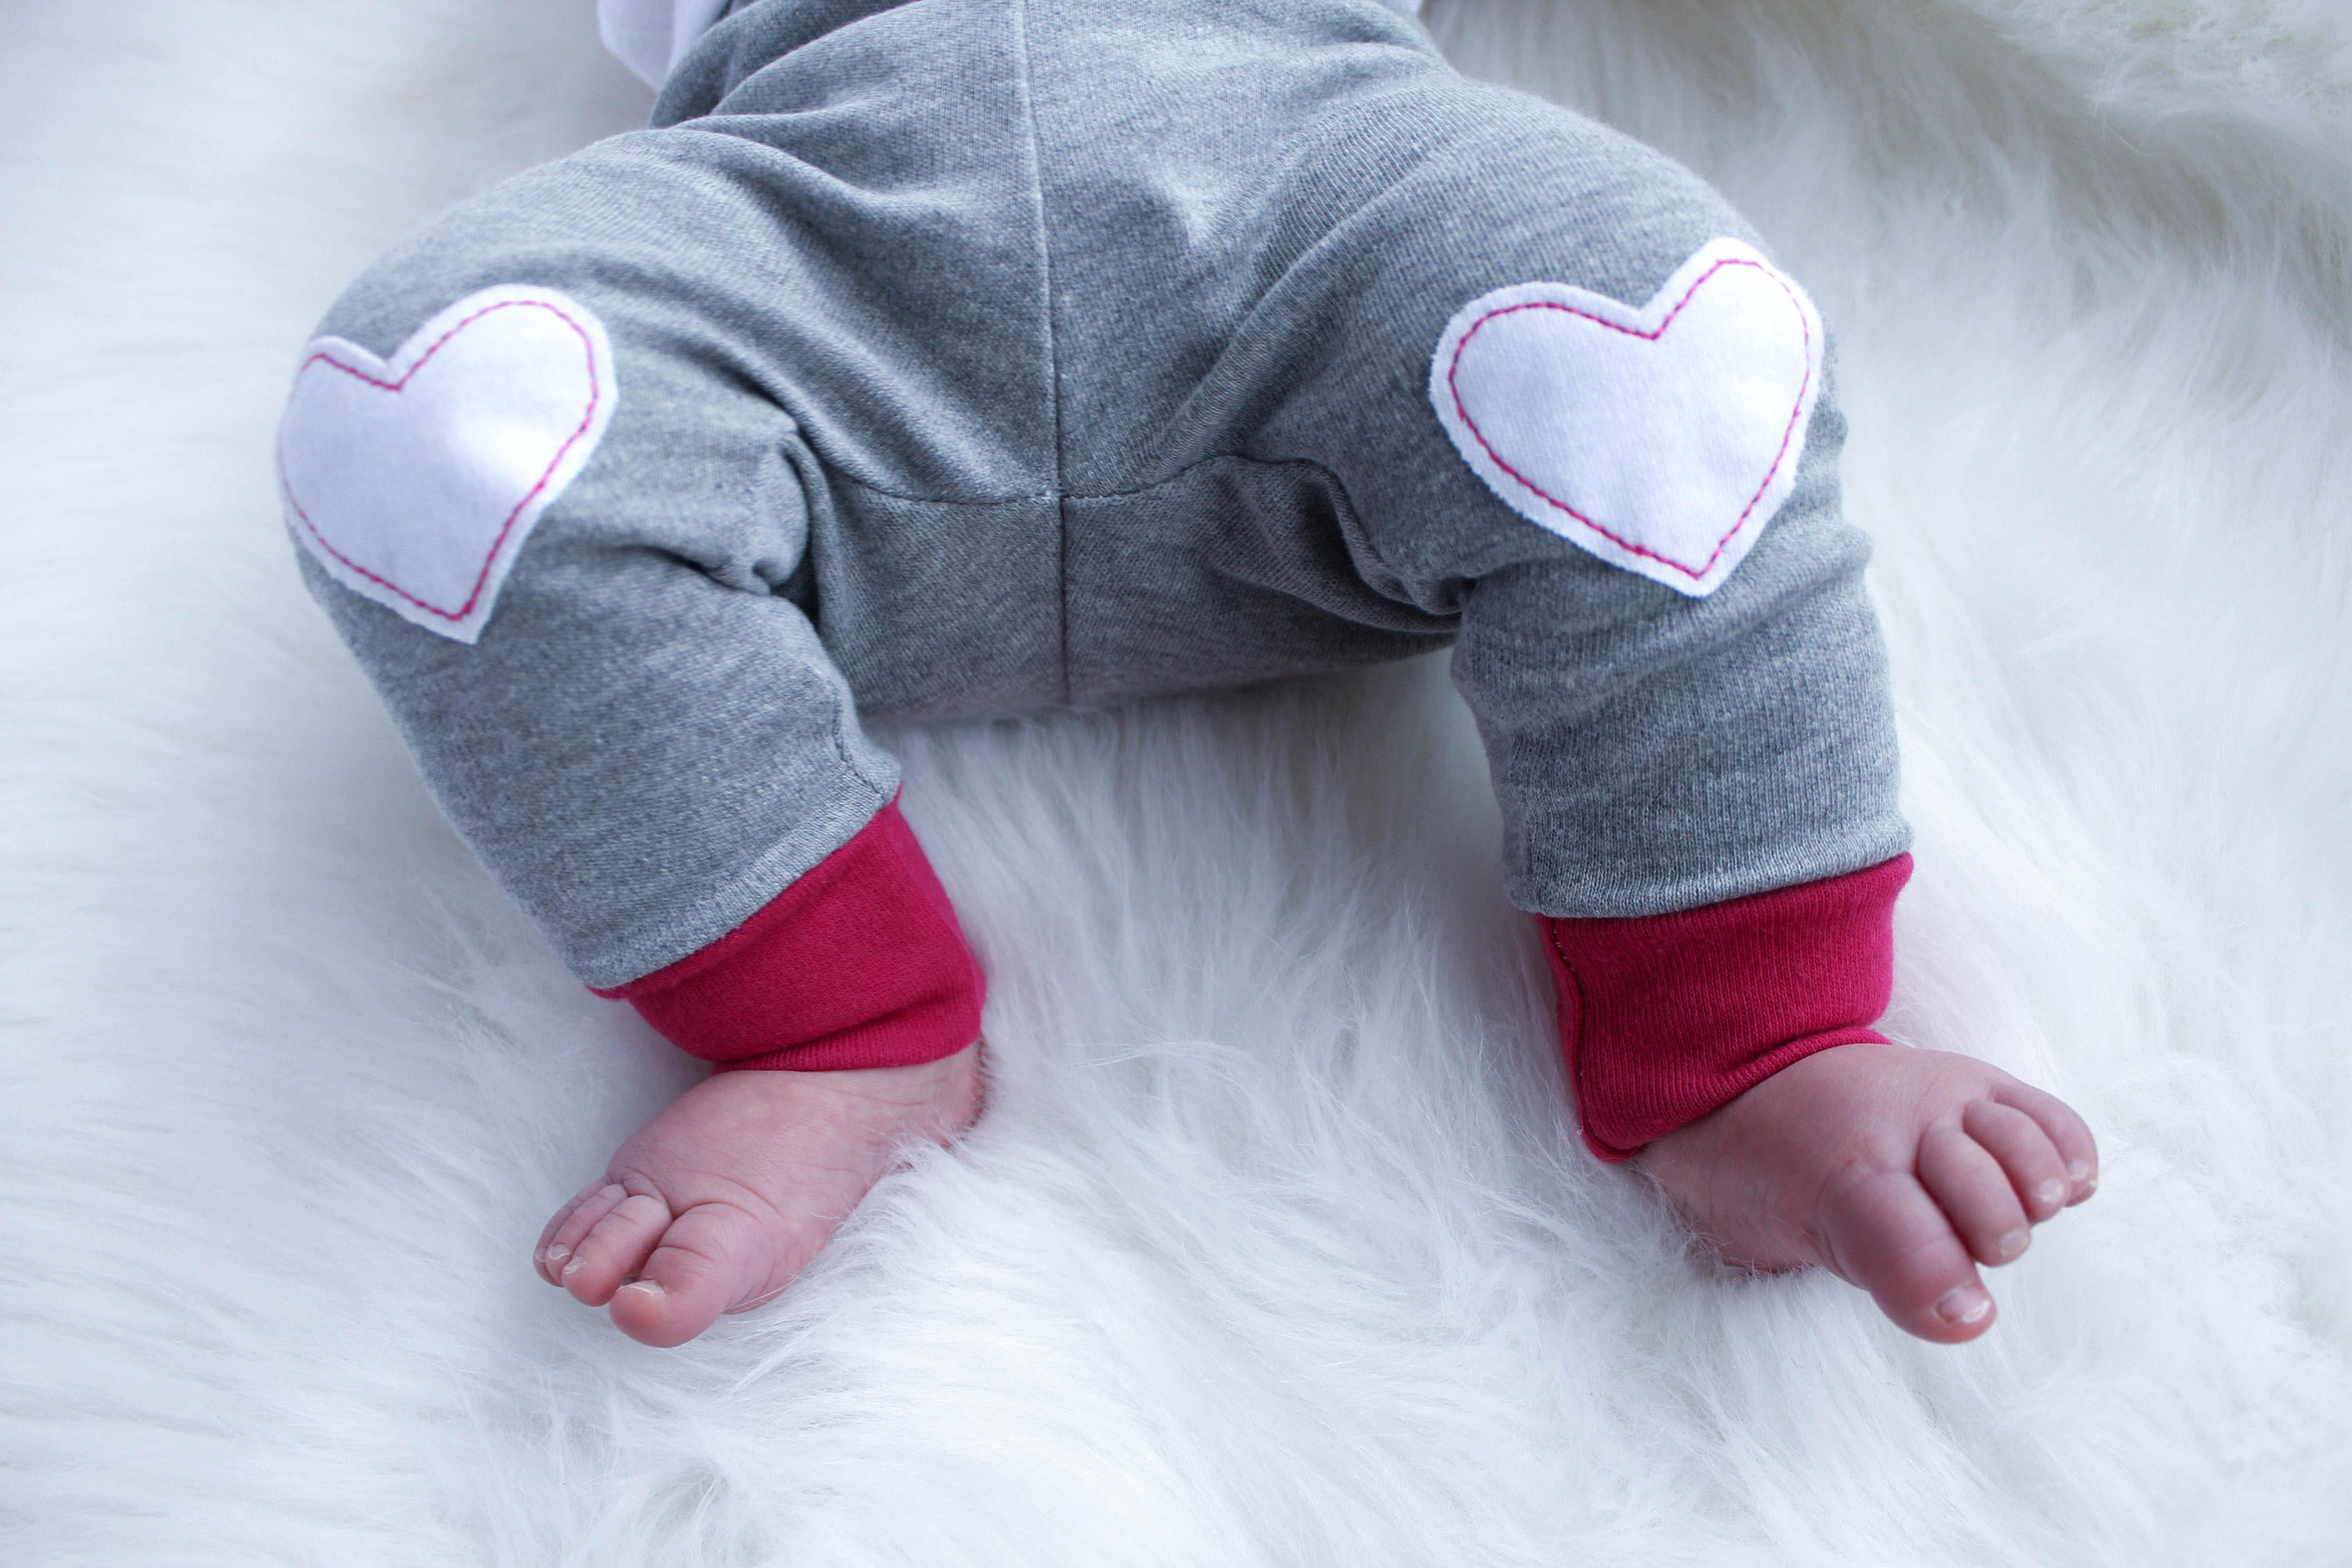 Details of leggings with heart shaped applique